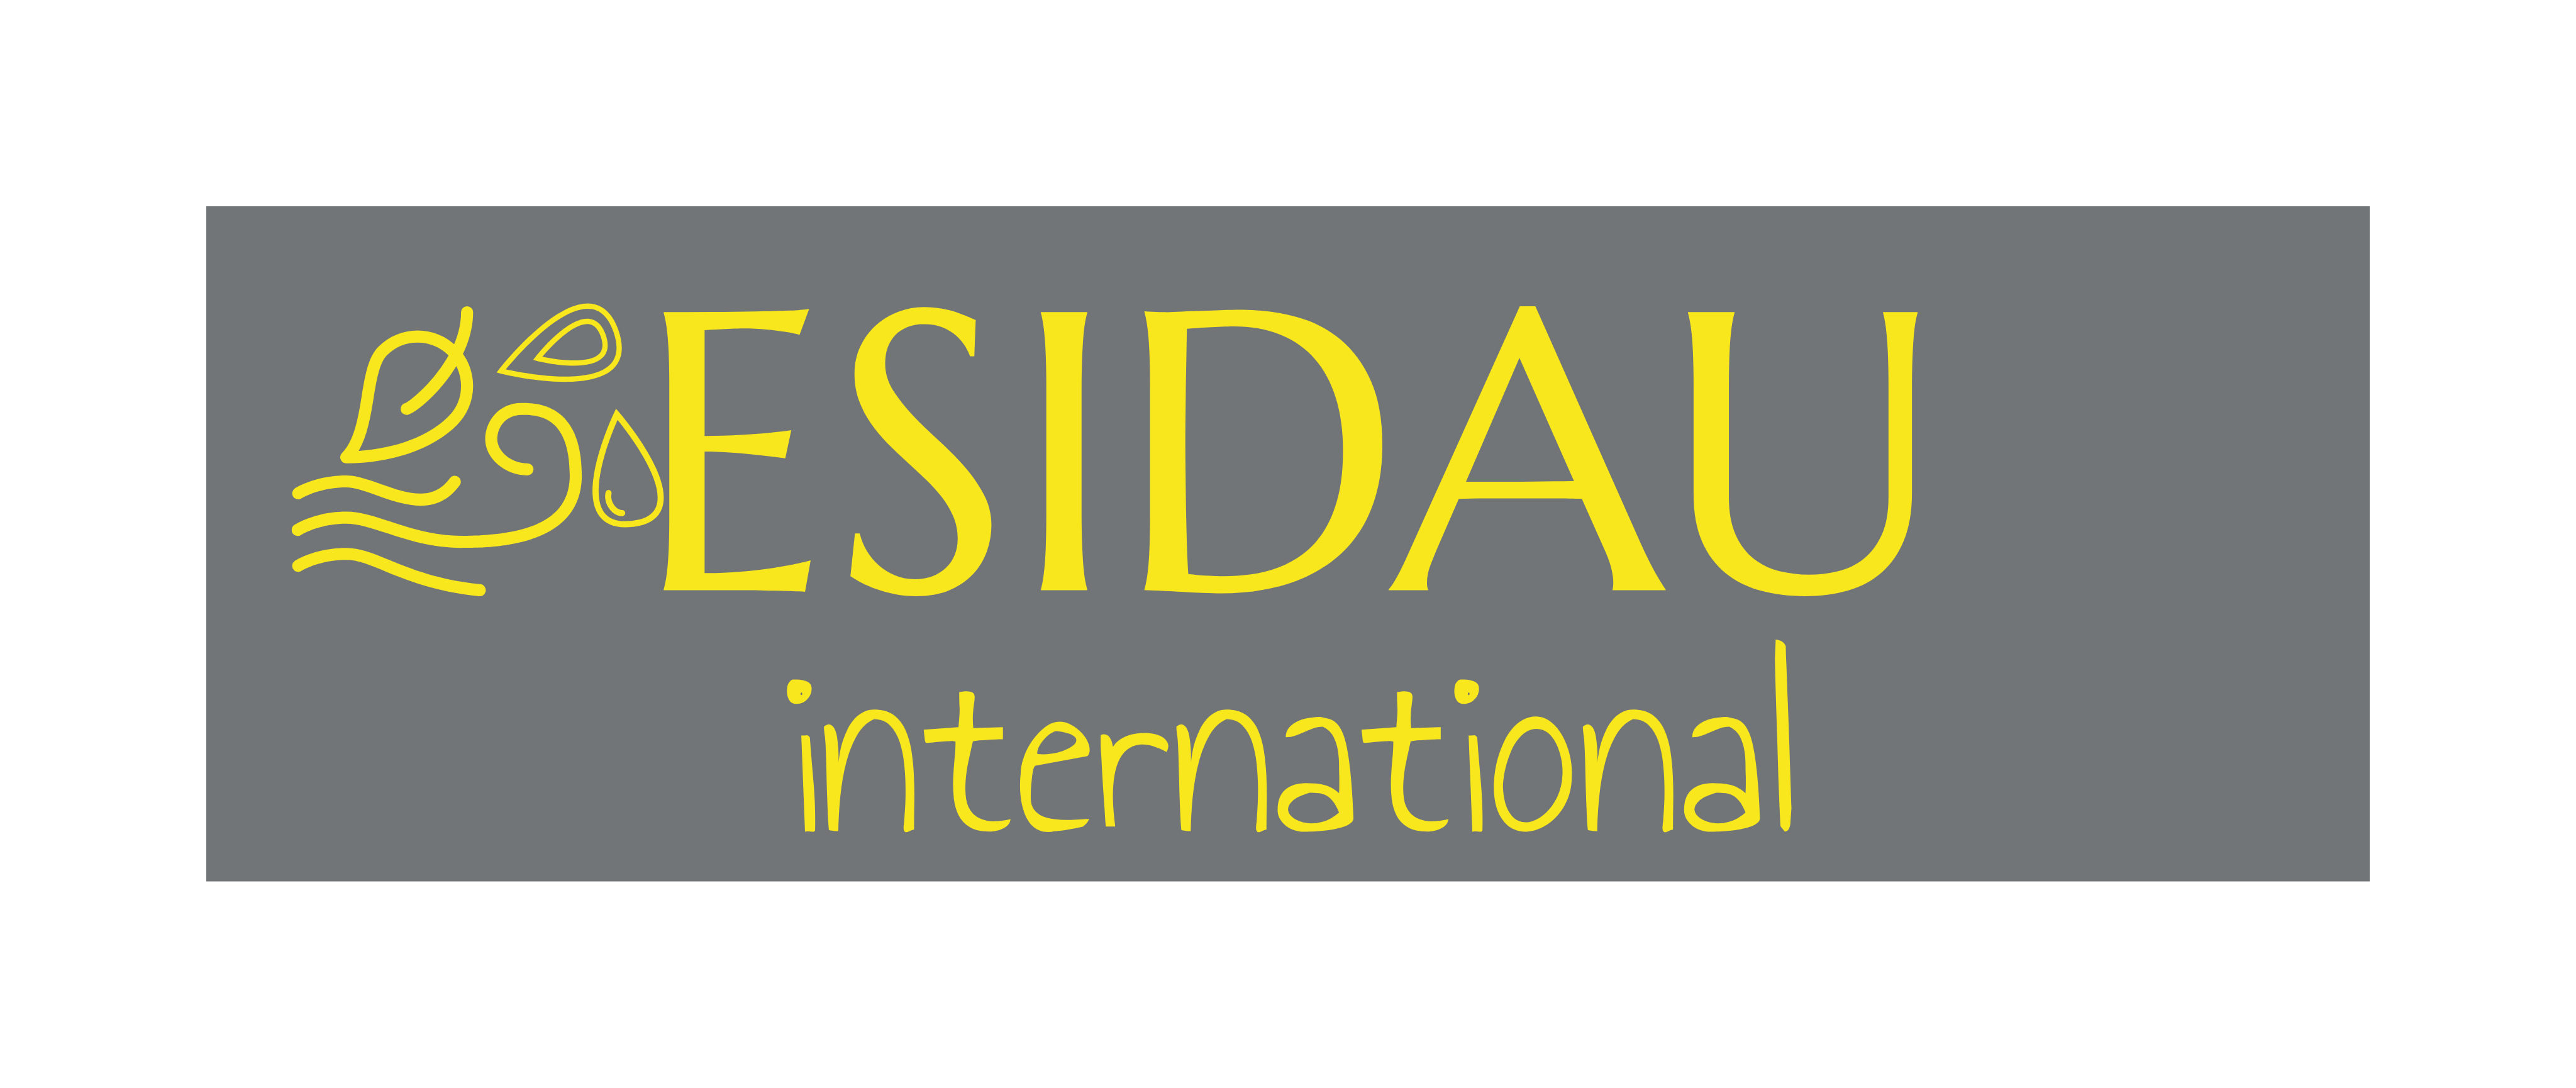 International Esidau Organization